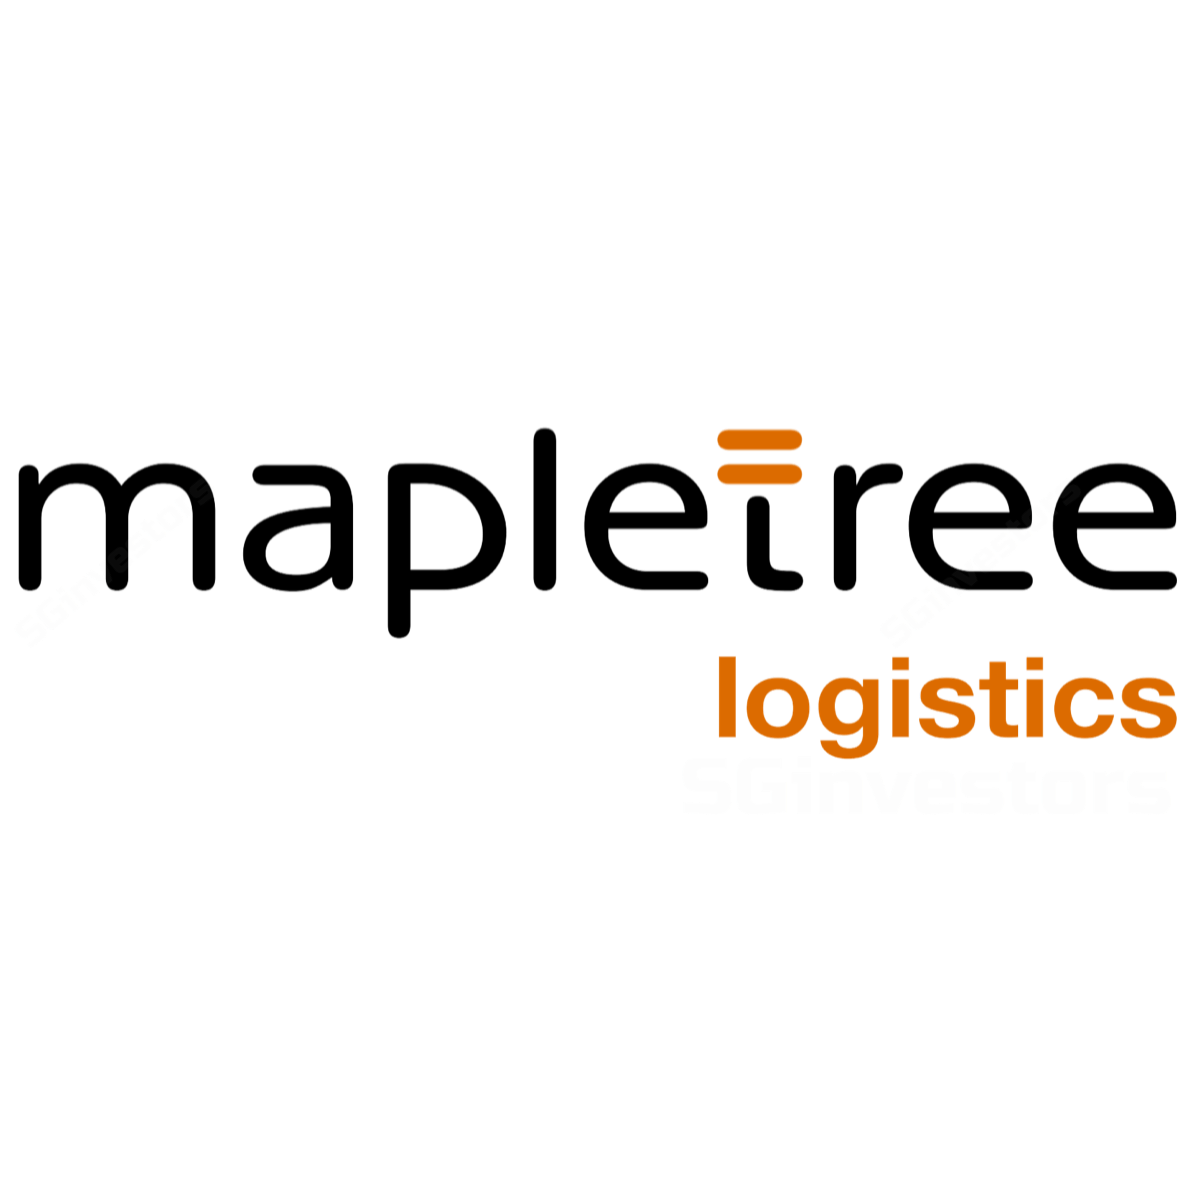 Mapletree Logistics Trust - UOB Kay Hian Research 2018-07-25: 2q18 Results In Line